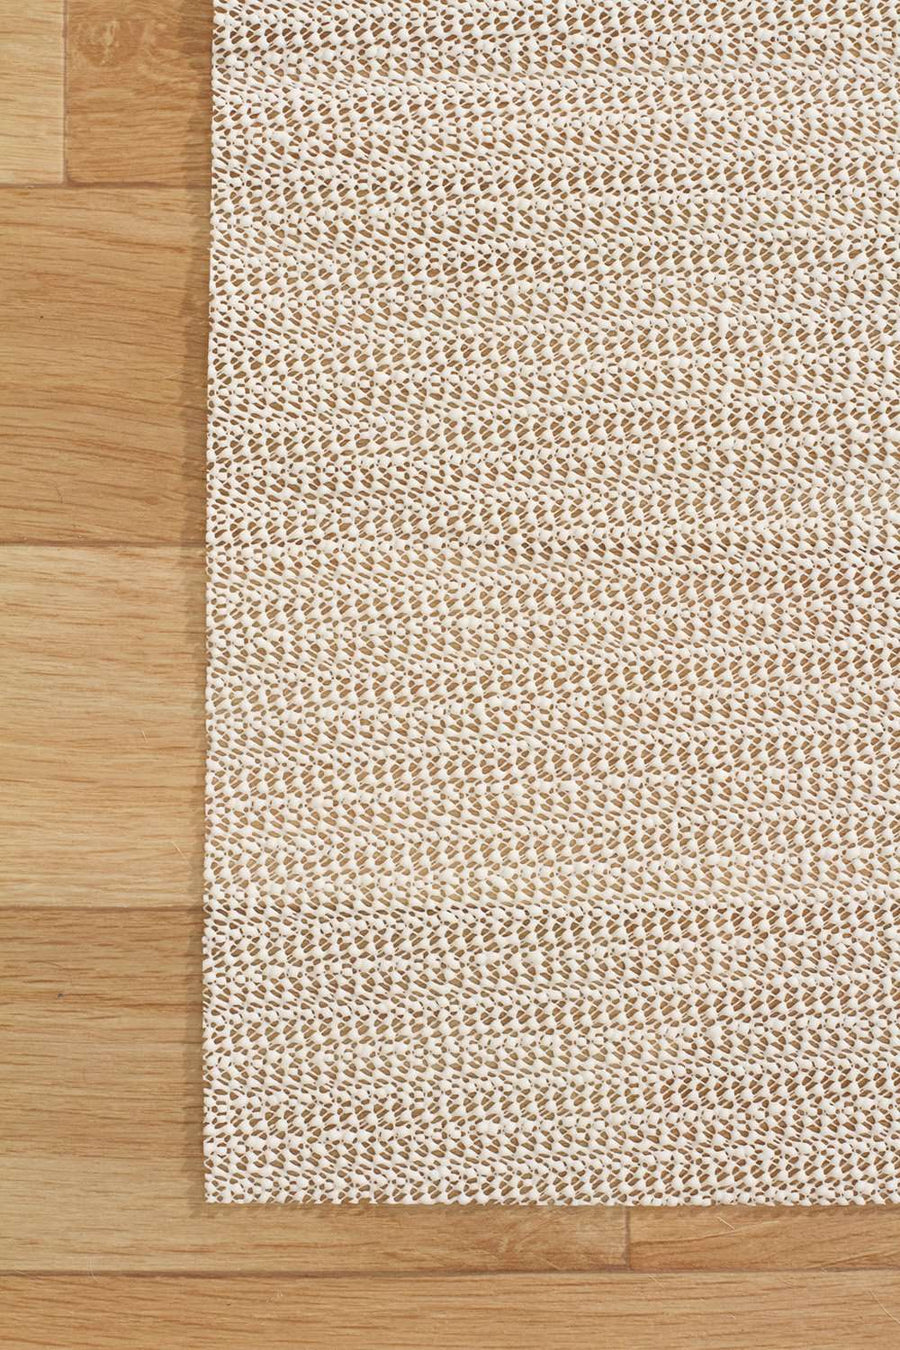 Rubber Anti-Slip Rug Pad / Underlay - Wood / Tiled Floors - Simple Style Co